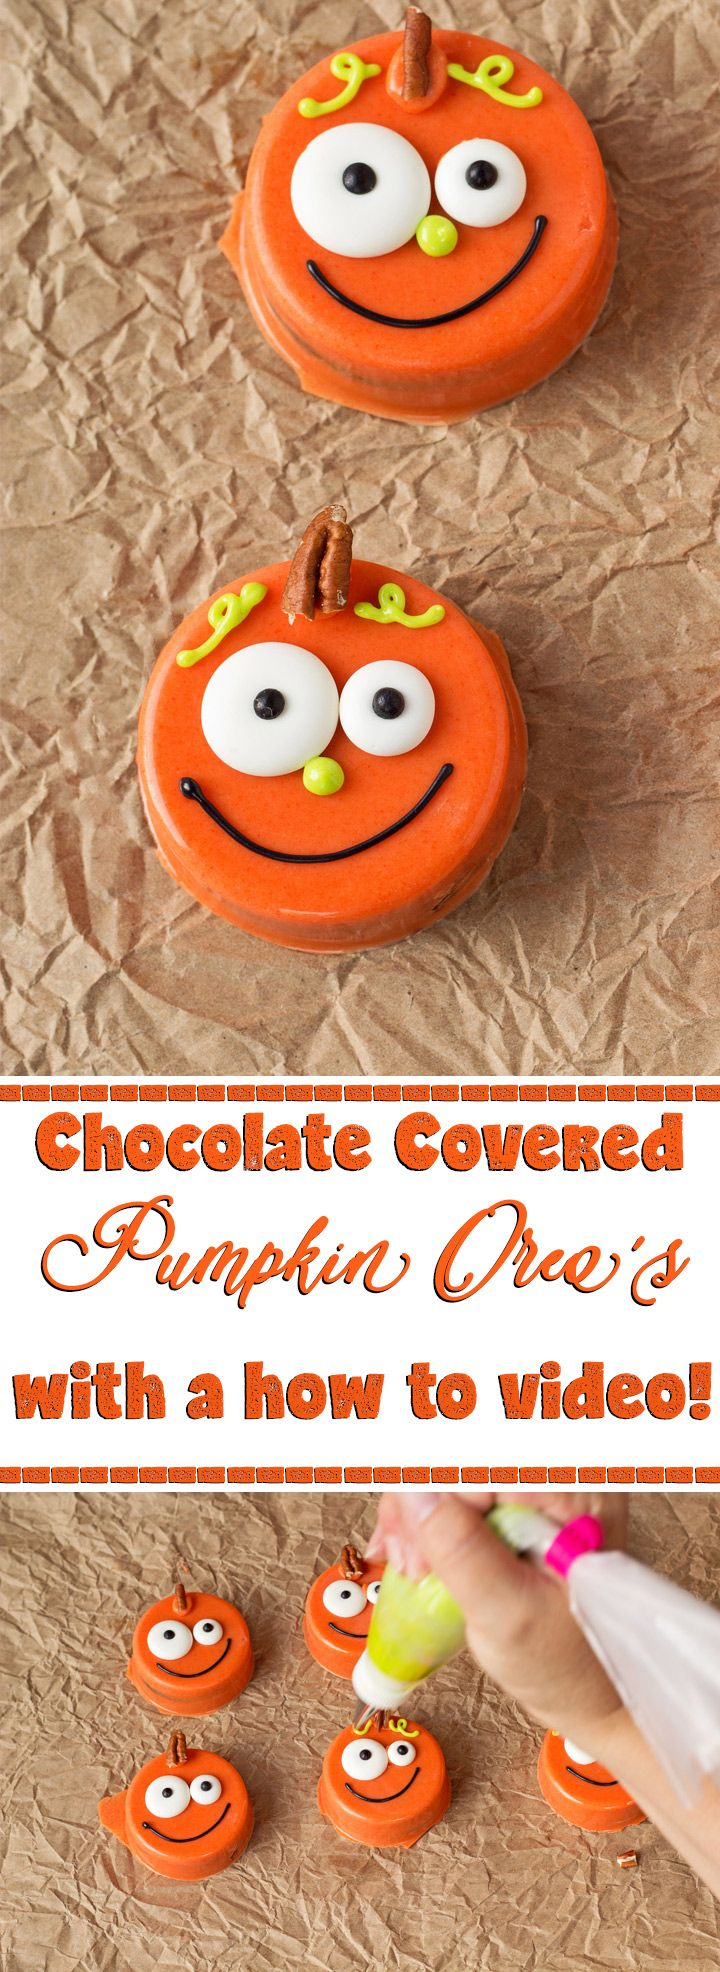 How to Make Simple Little Chocolate Covered Oreos with a How to Video | The Bearfoot Baker